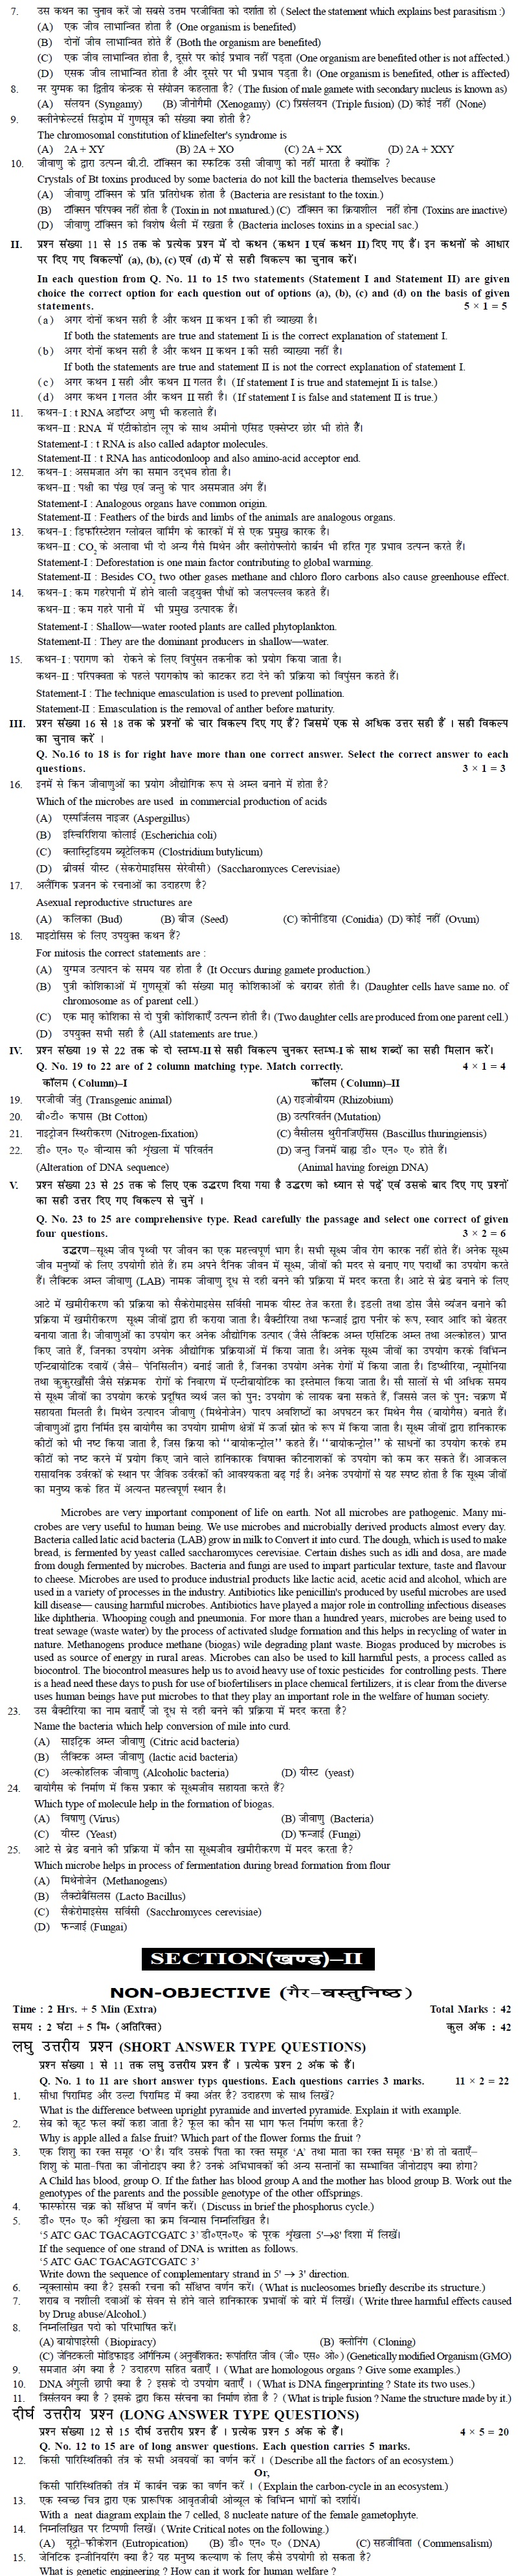 Bihar Board Class XII Science Model Question Papers - Biology